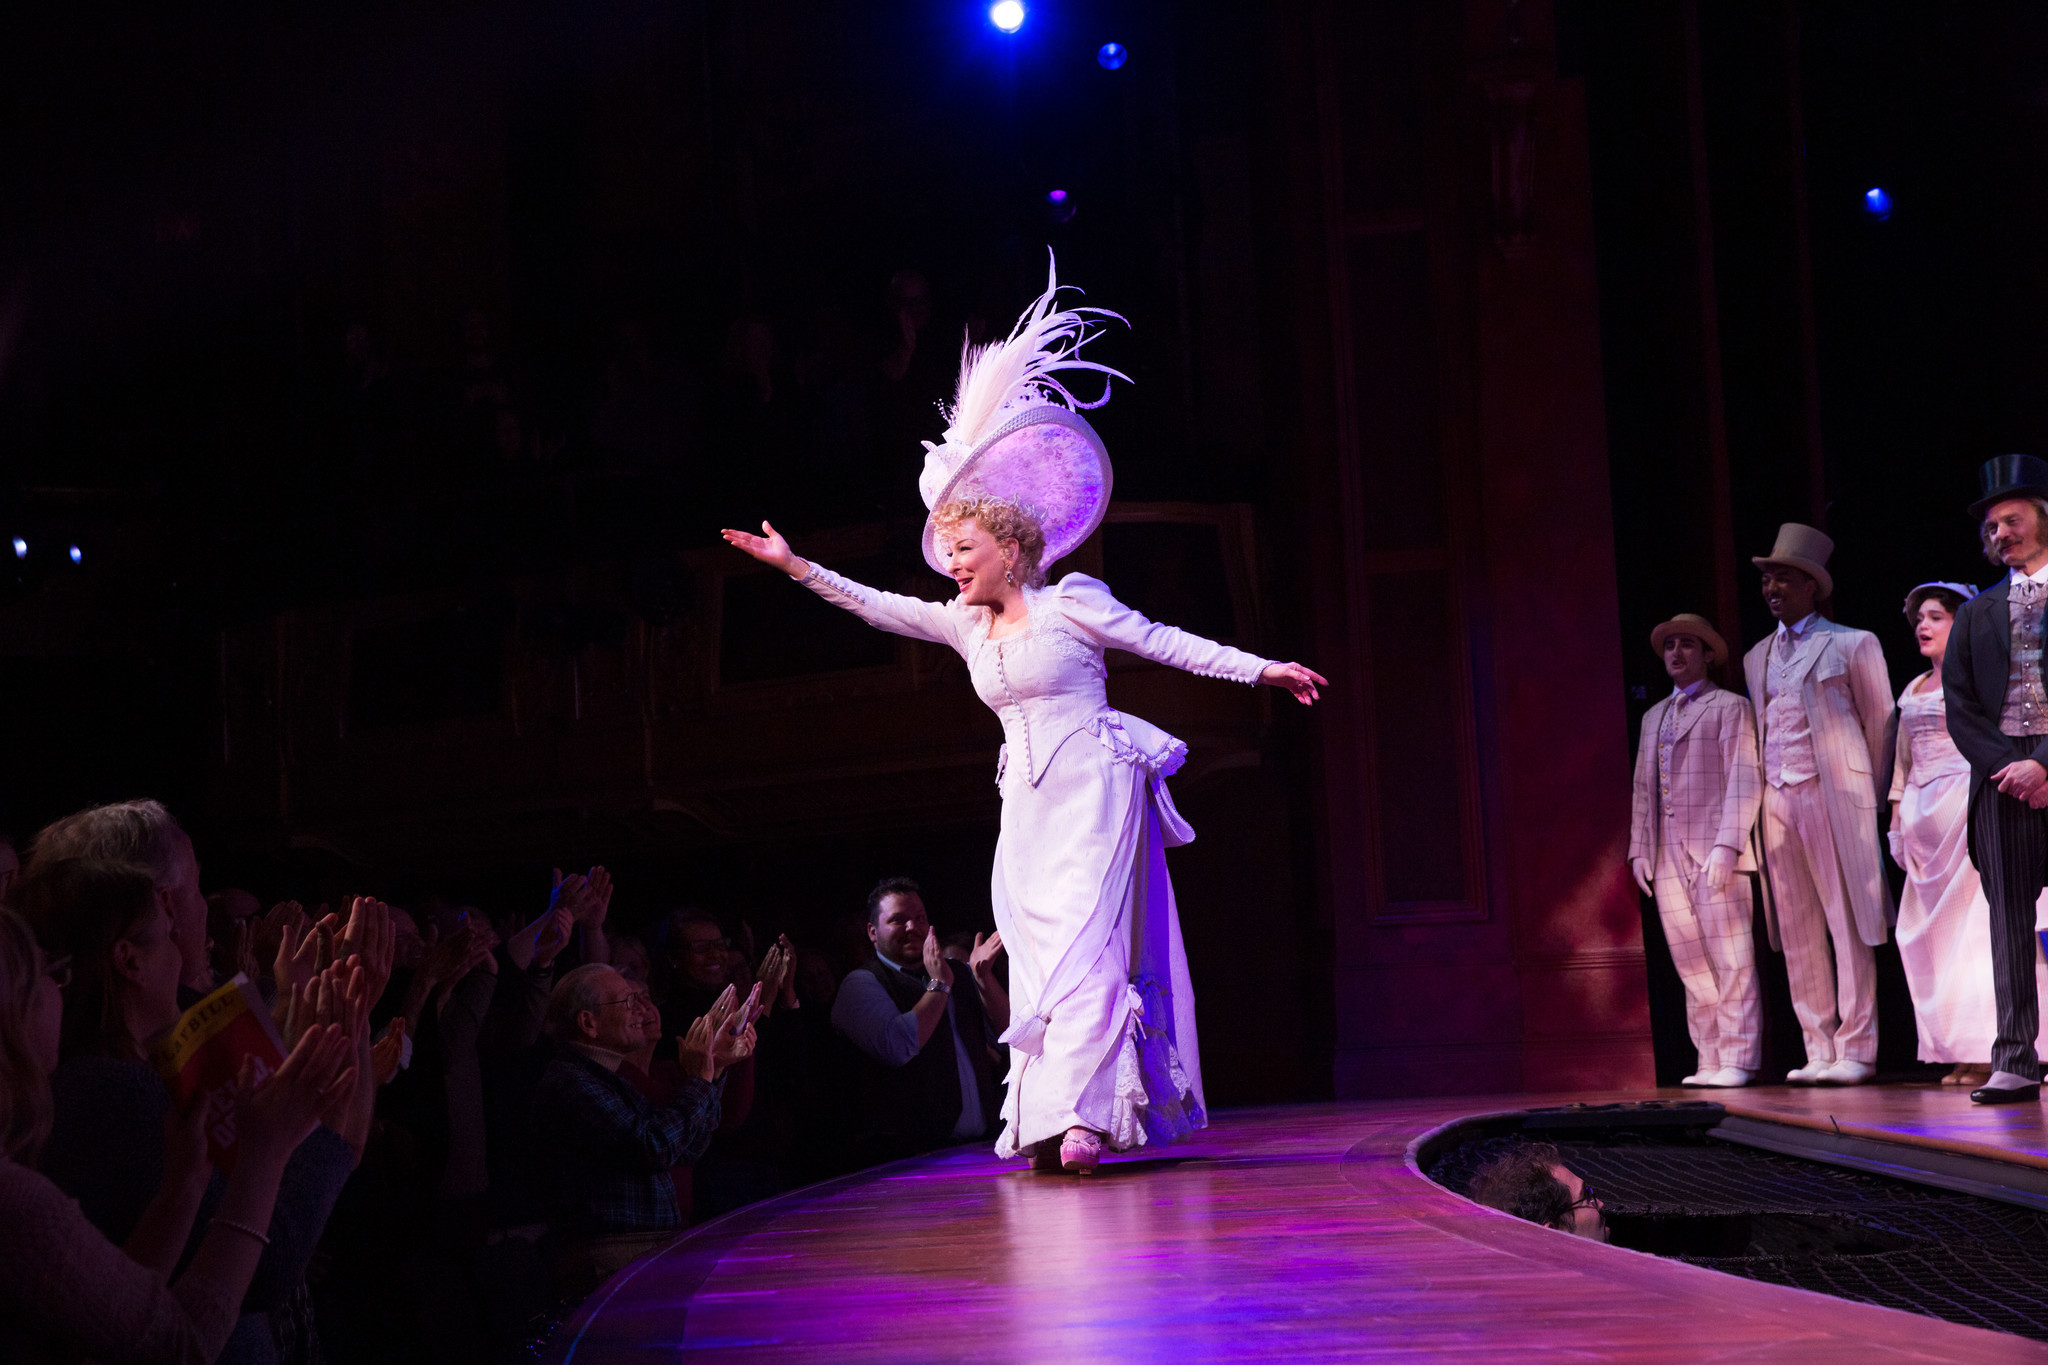 Midler accepts an ovation. Will she receive a Tony too?